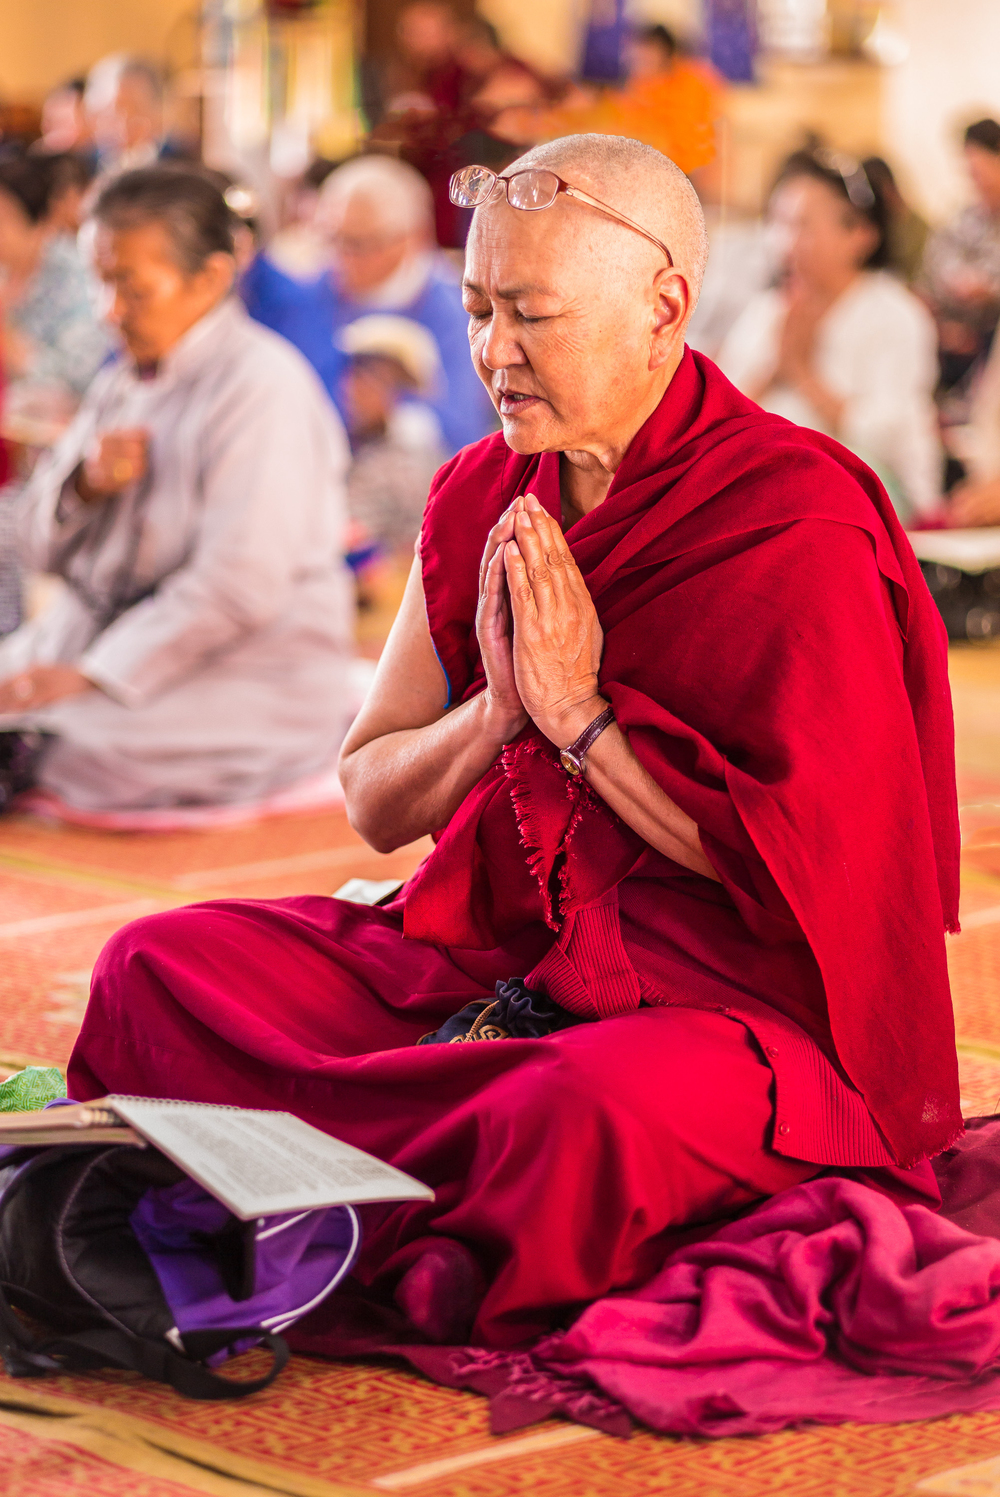 Buddhist nun during prayers and chanting